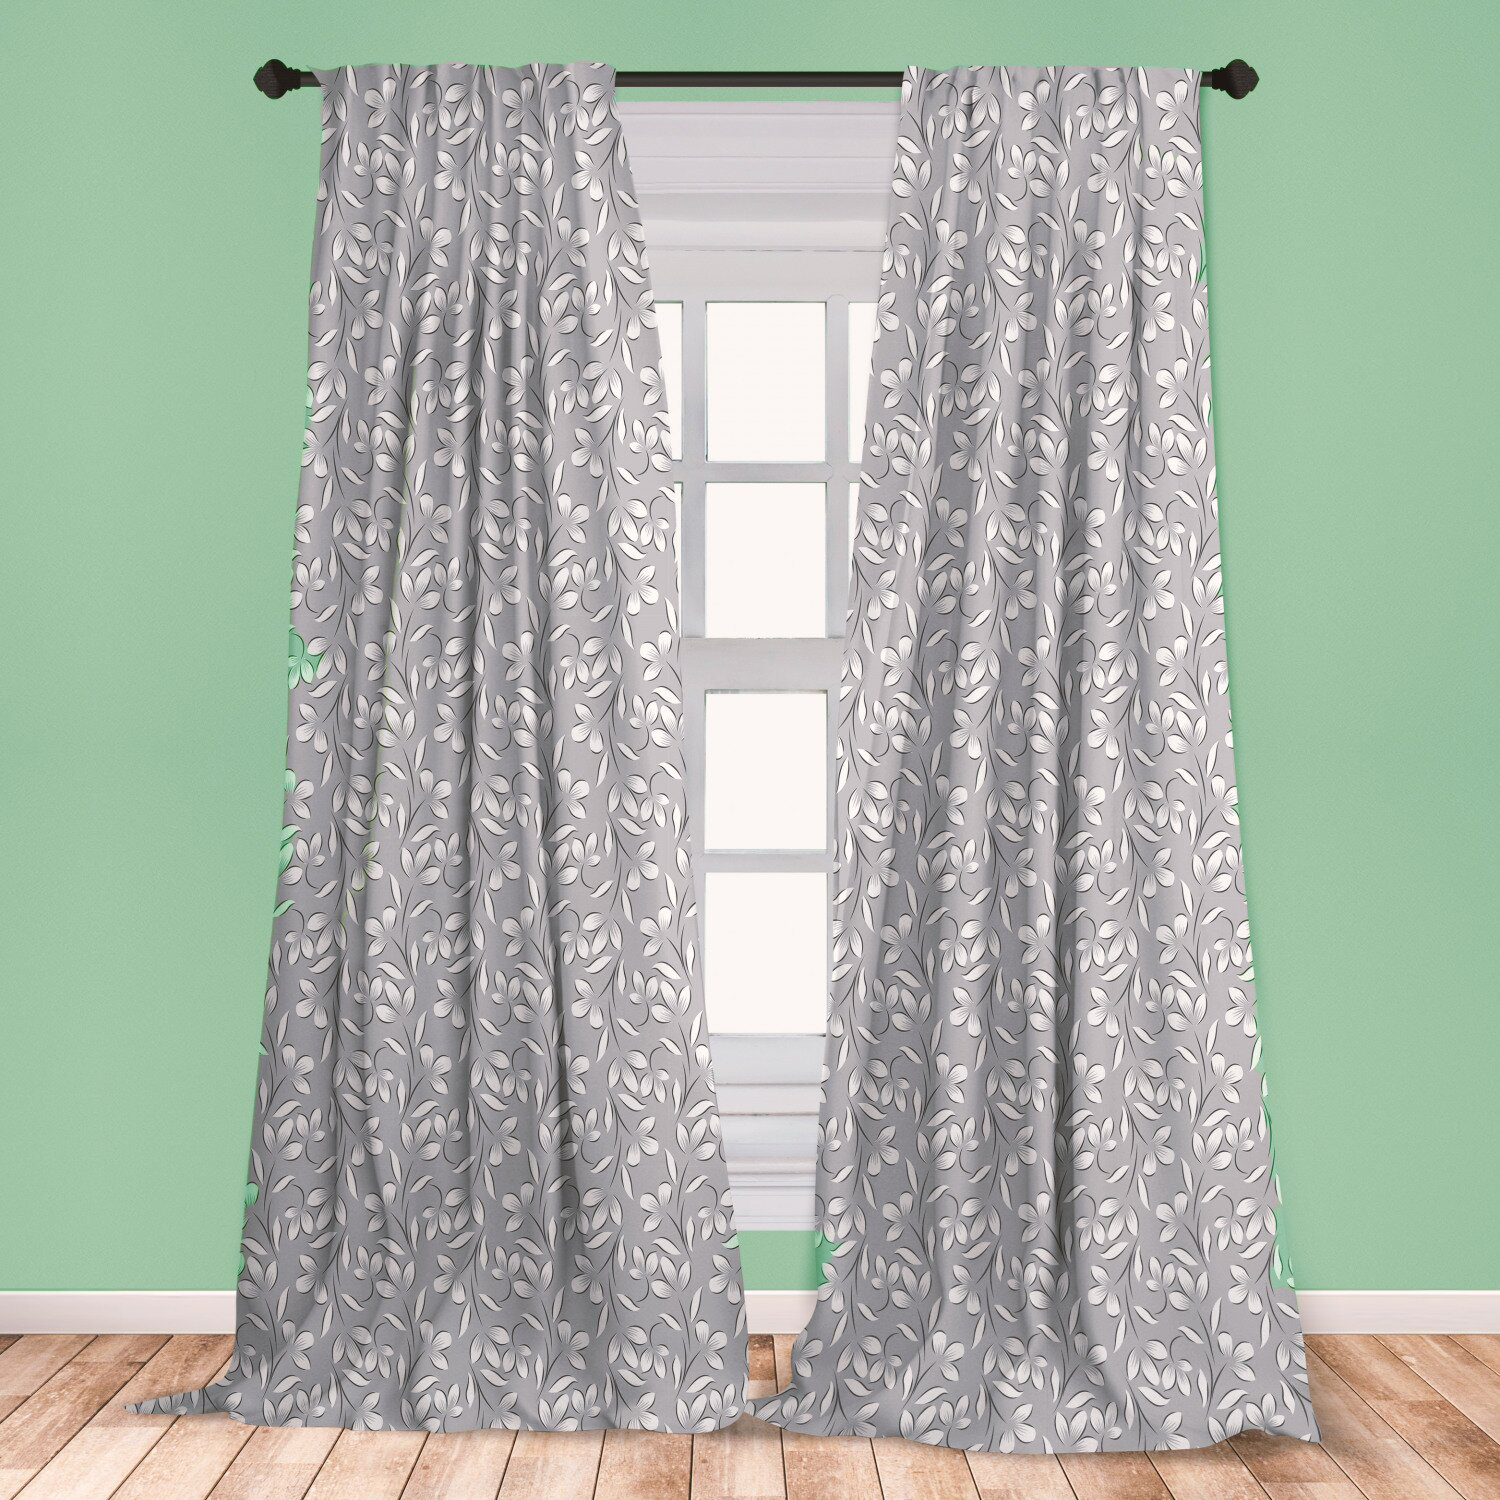 Gray Curtains Against Light Green Walls Feel Just Right